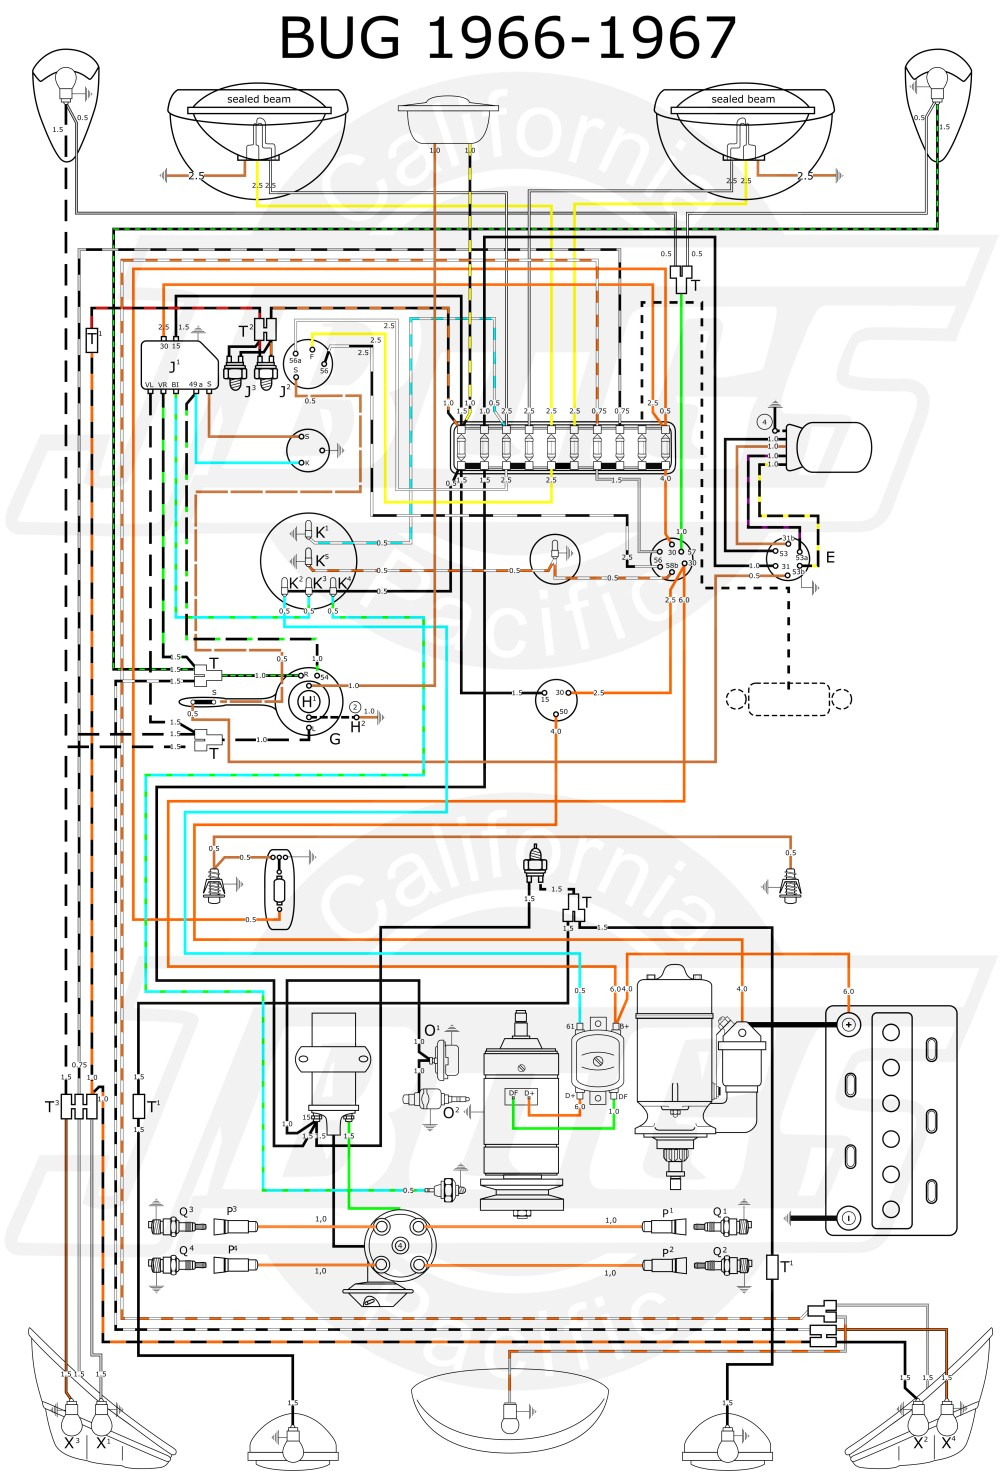 medium resolution of 1966 porsche 912 wiring diagram schematic wiring library 1966 porsche 912 wiring diagram schematic